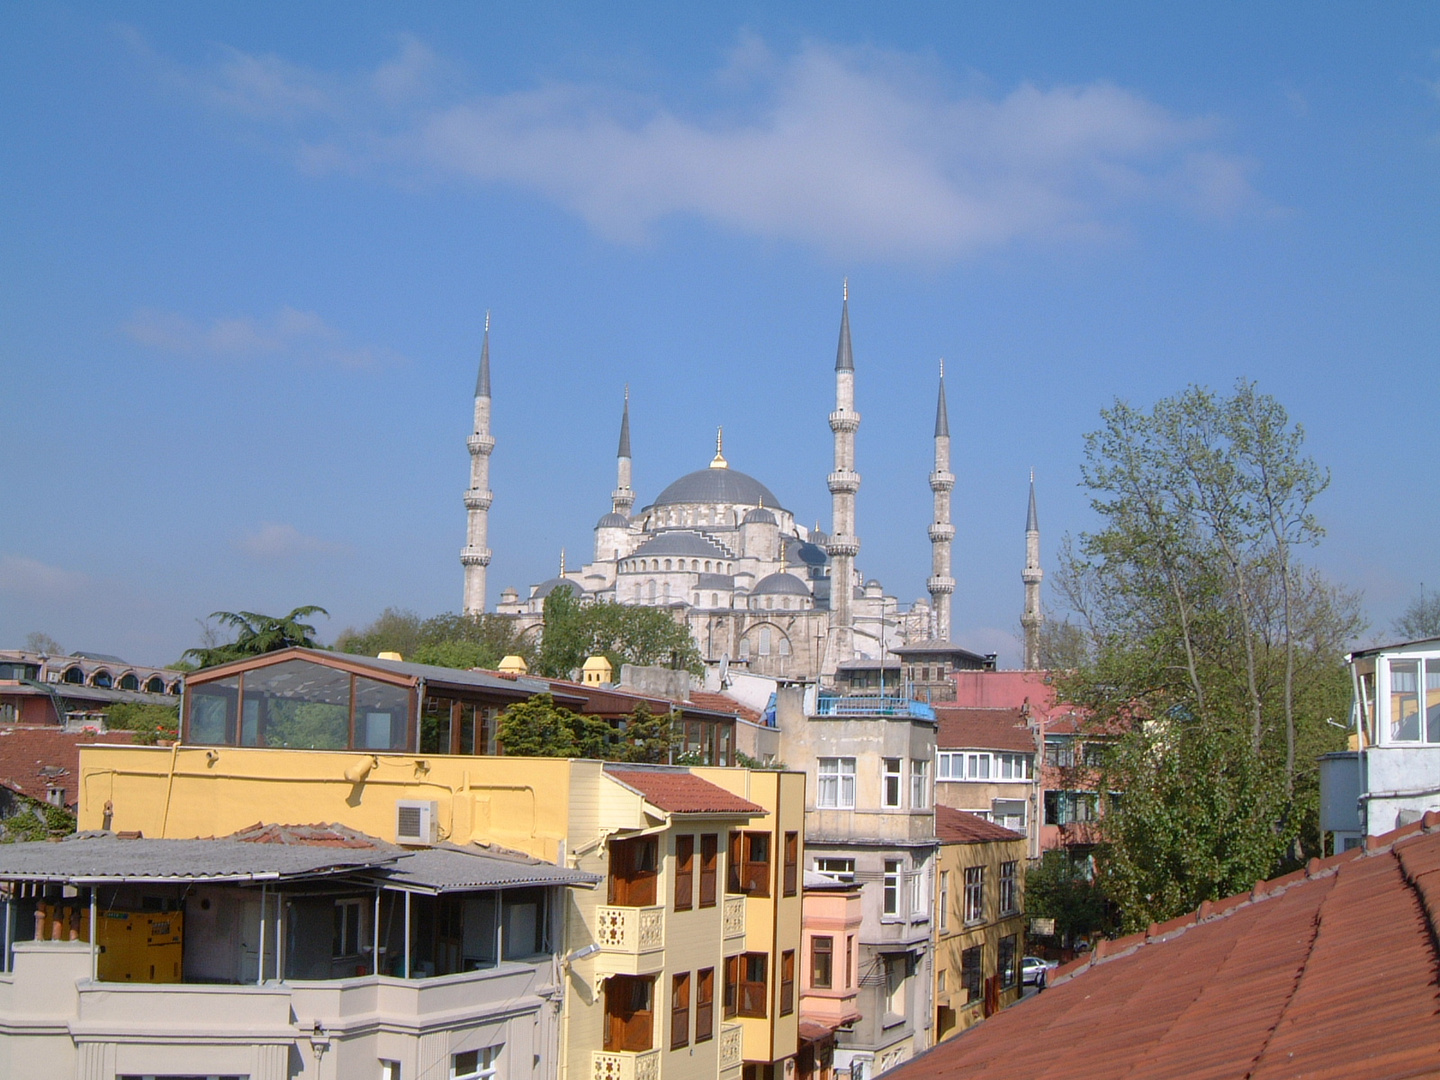 View from the Roof of Obelisk & Sümengen Hotel to the Blue Mosque (Sultanahmet Camii)